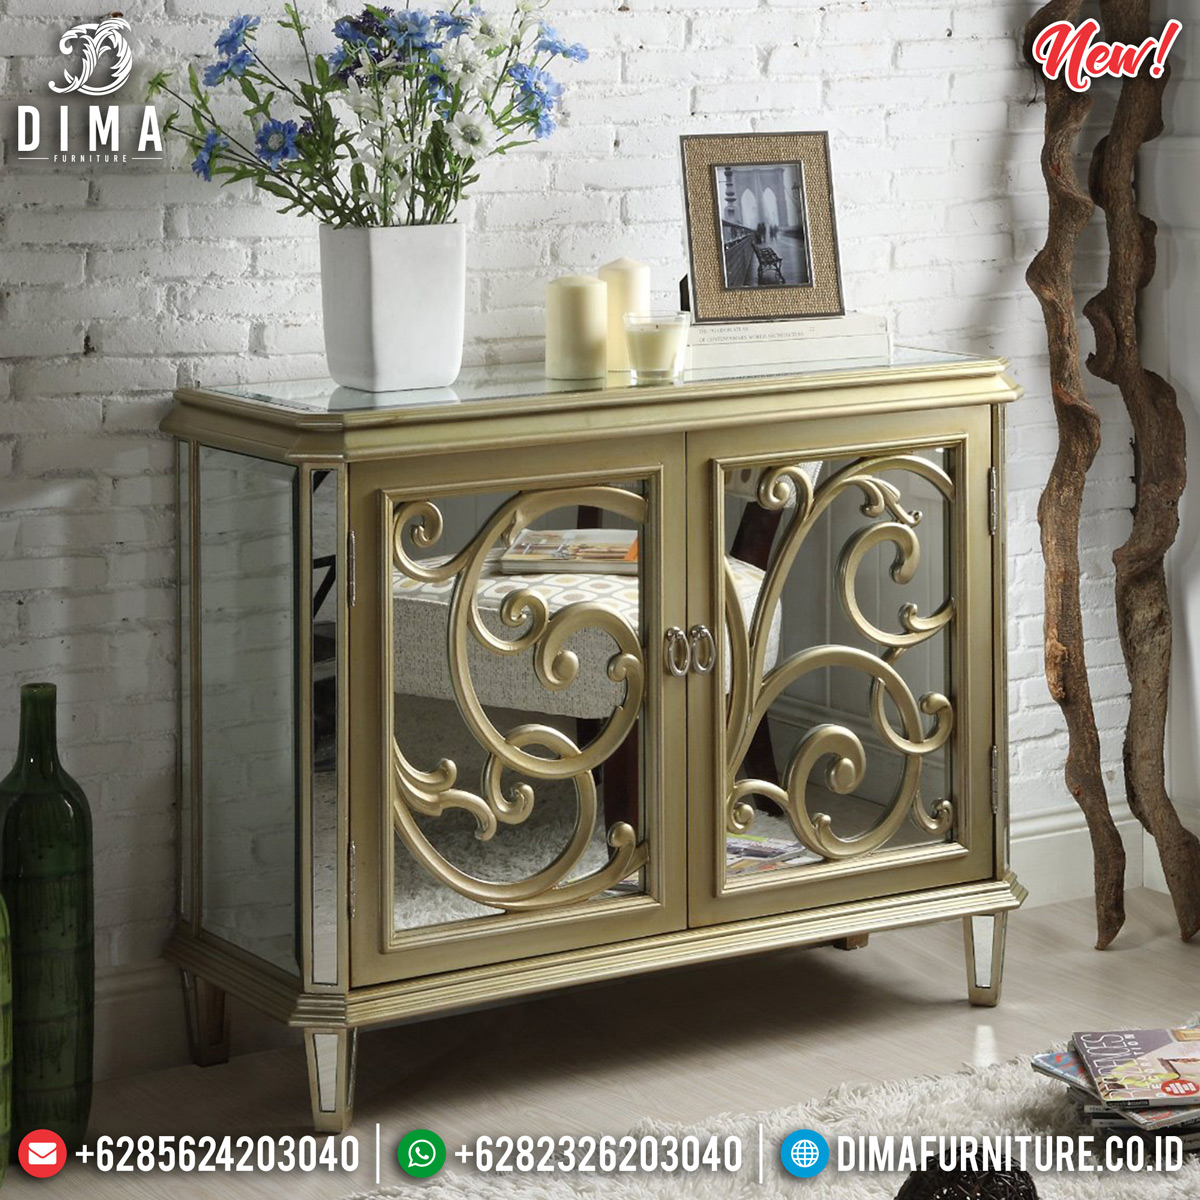 New Meja Konsol Mewah Minimalist Gorgeous Great Solid Wood TTJ-0836 Design 1